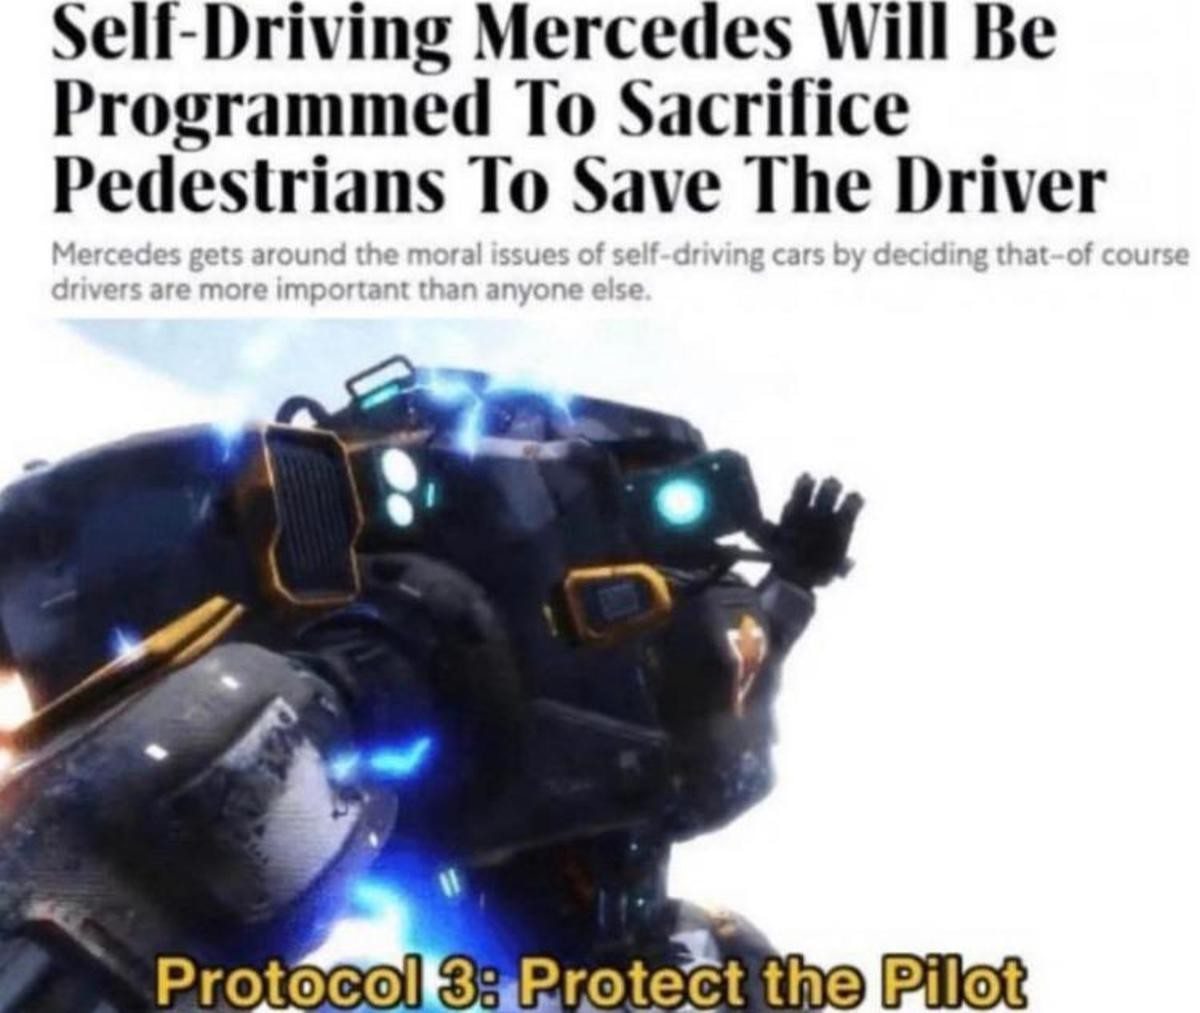 Protocol 3. .. that makes perfect sense, would you rather buy a car more likely to sacrifice you over the dumbass walking on the road